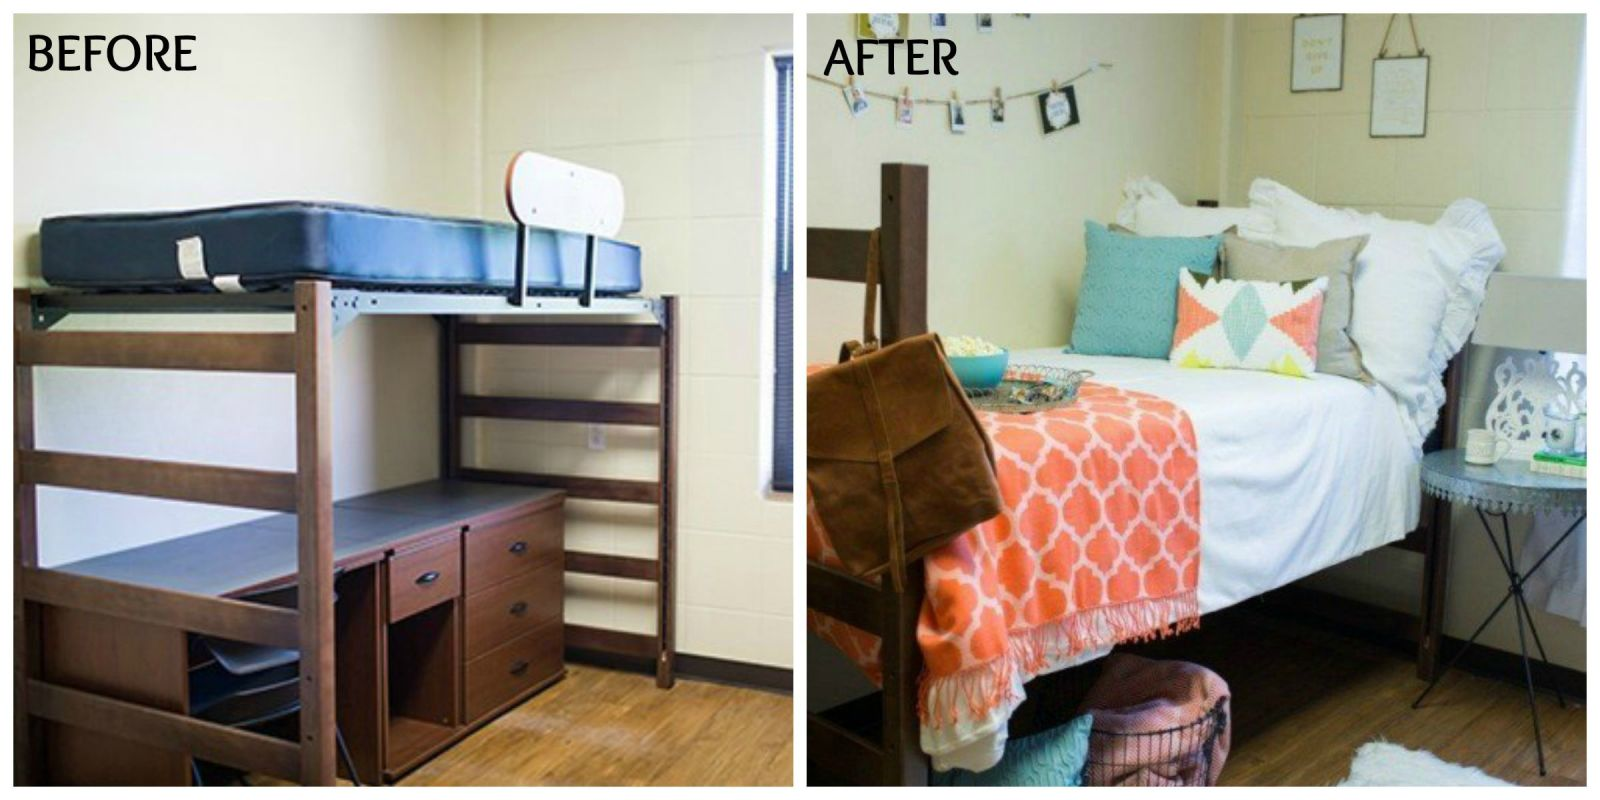 country living magazine part 84 - Dorm Design Ideas